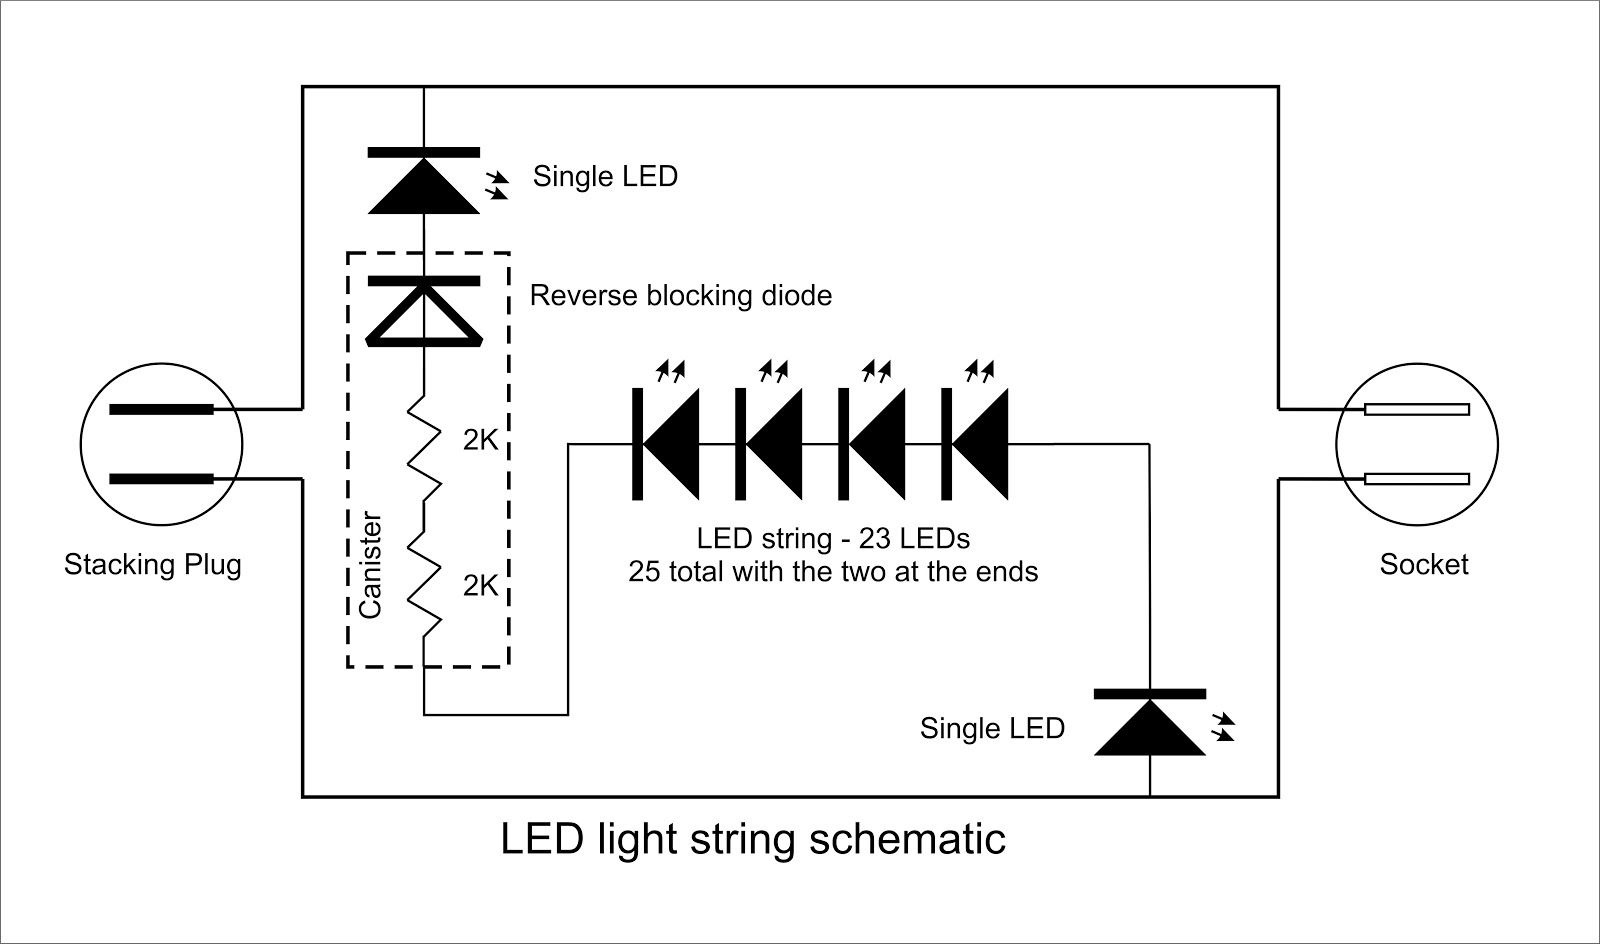 led-light-string-schematic Xmas Lights Wiring Diagram on string lights wiring diagram, xmas lights safety, xmas lights frame, xmas lights forum, xmas lights battery, pool lights wiring diagram, christmas lights wiring diagram, icicle lights wiring diagram, xmas lights circuit, xmas lights fuse, rope lights wiring diagram, xmas lights troubleshooting,